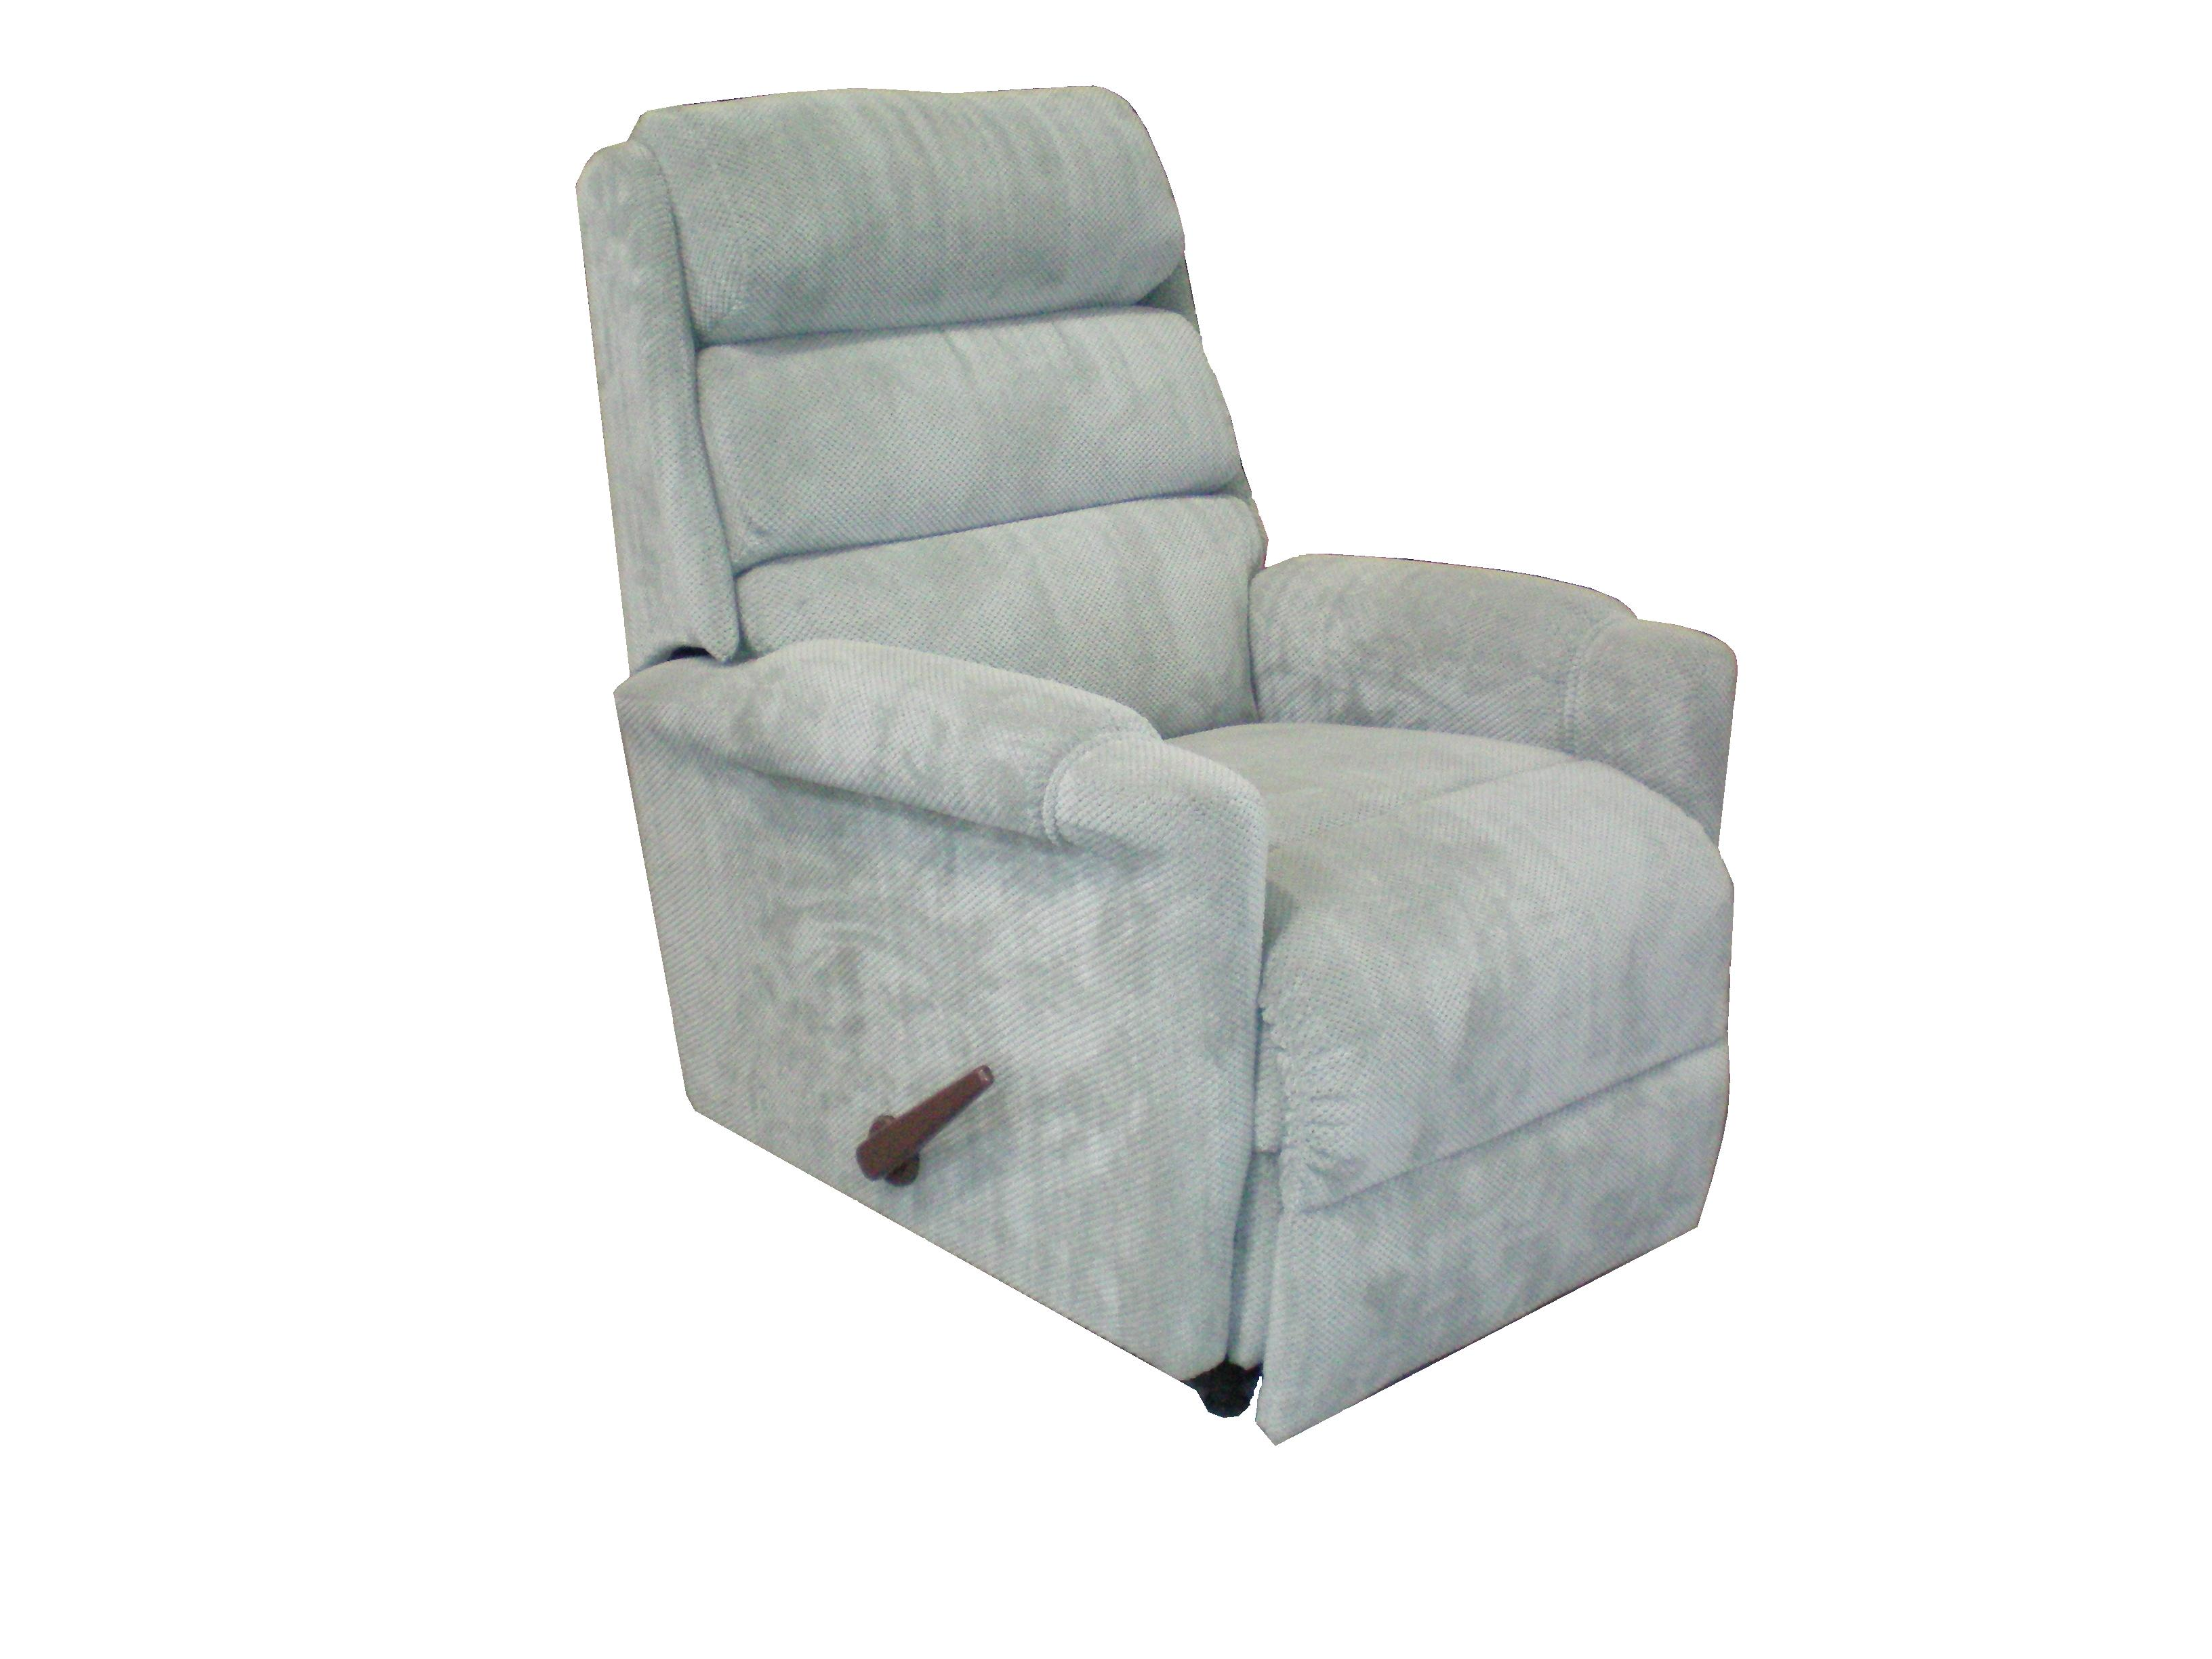 chair seating p hospital prospec care equipment recliner yorkshire